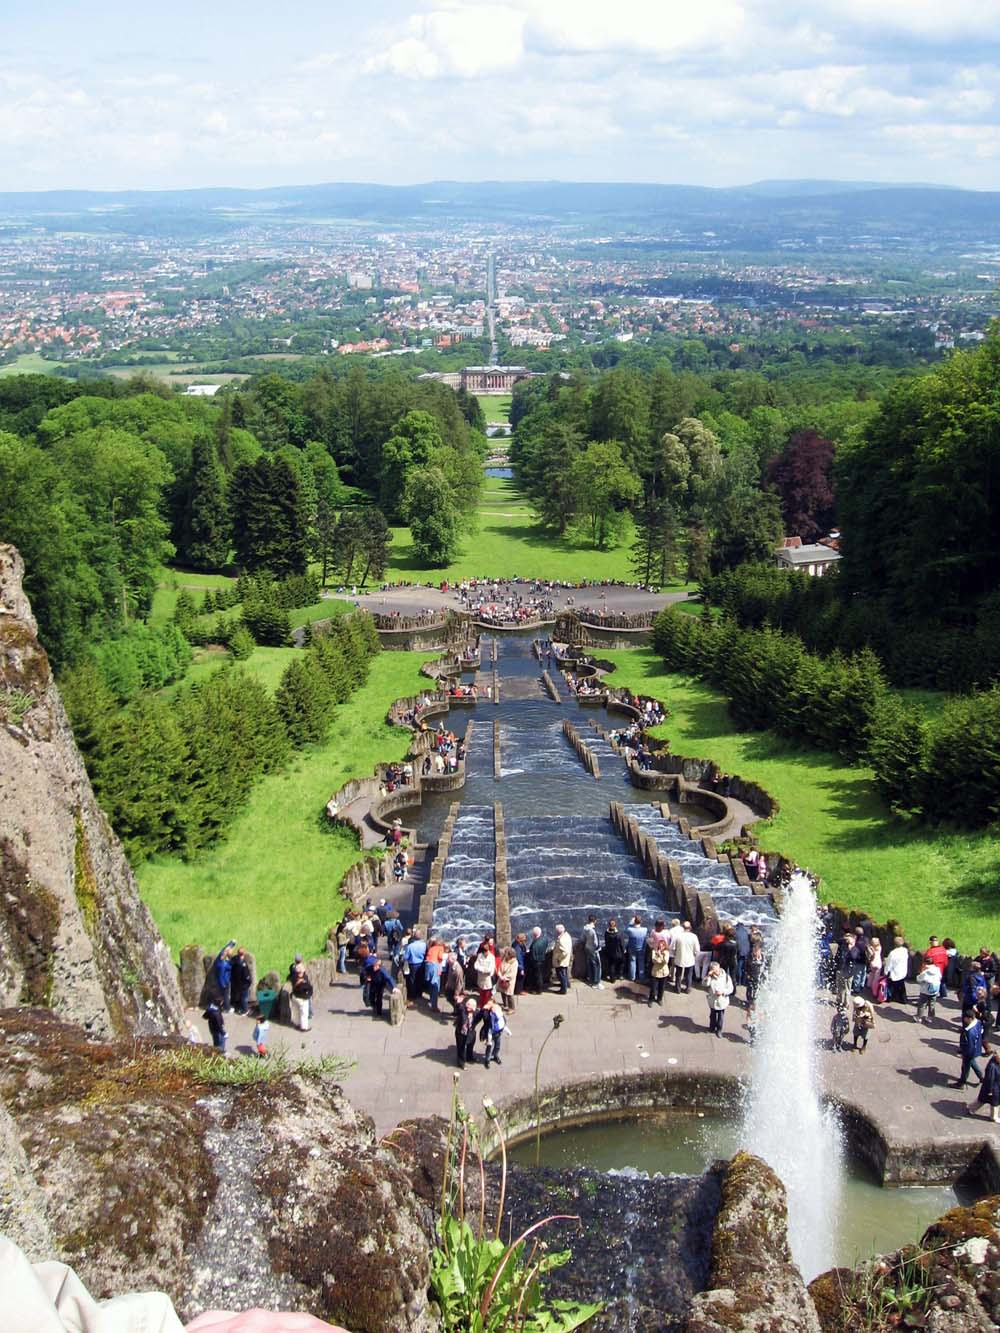 "View from the Bergpark Wilhelmshöhe (mountain park) to Kassel, with the Baroque Water feature in operation. In background the castle Wilhelmshöhe and street ""Wilhelmshöher Allee"" to city. Wikimedia Commons."